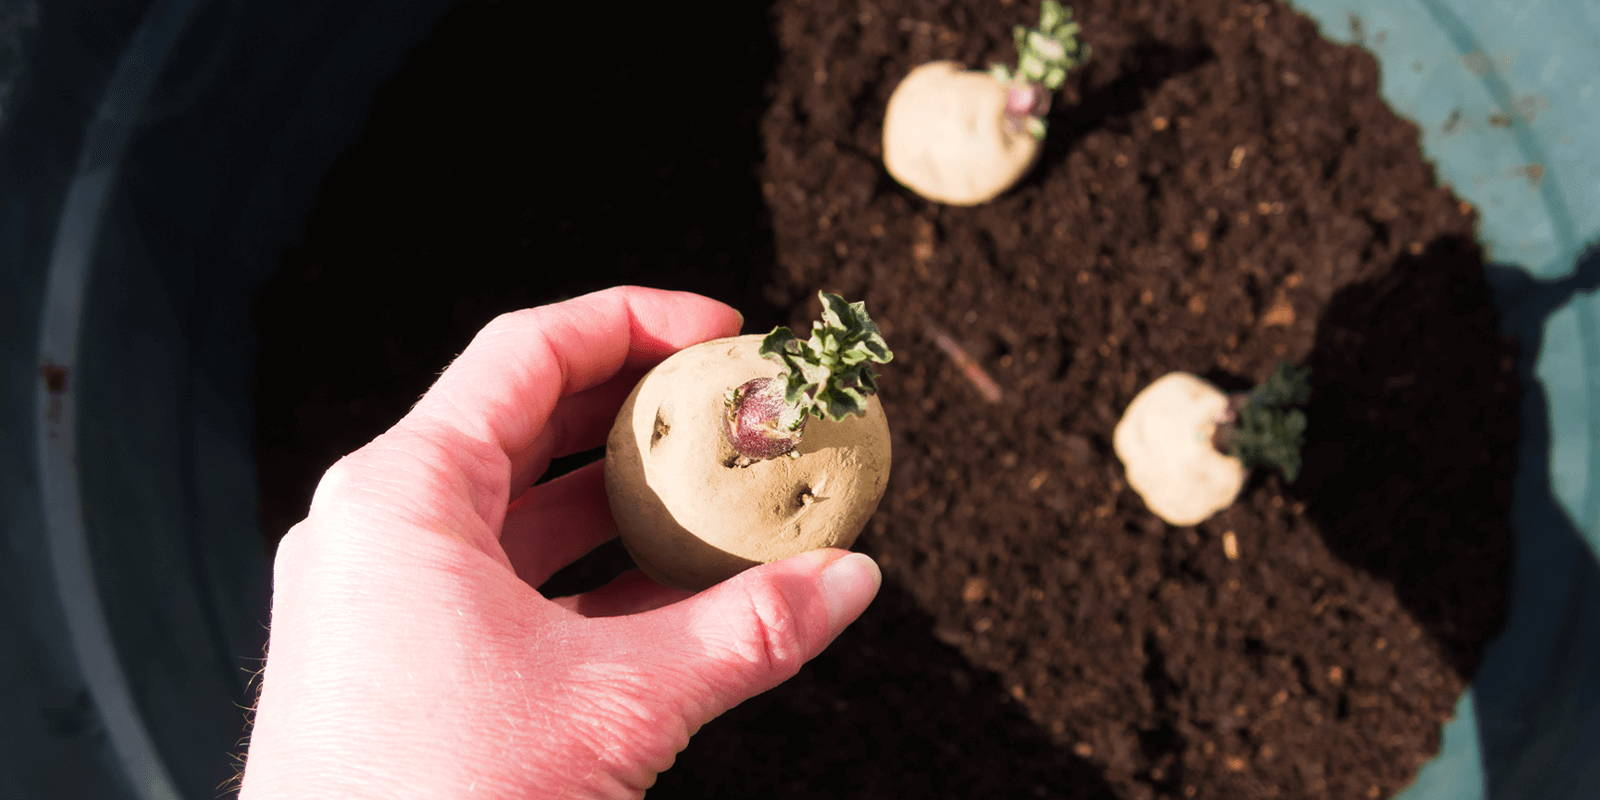 A hand holding a sprouted potato above a container garden with other potato sprouts poking out of the soil. The hand casts a shadow in the bright light.